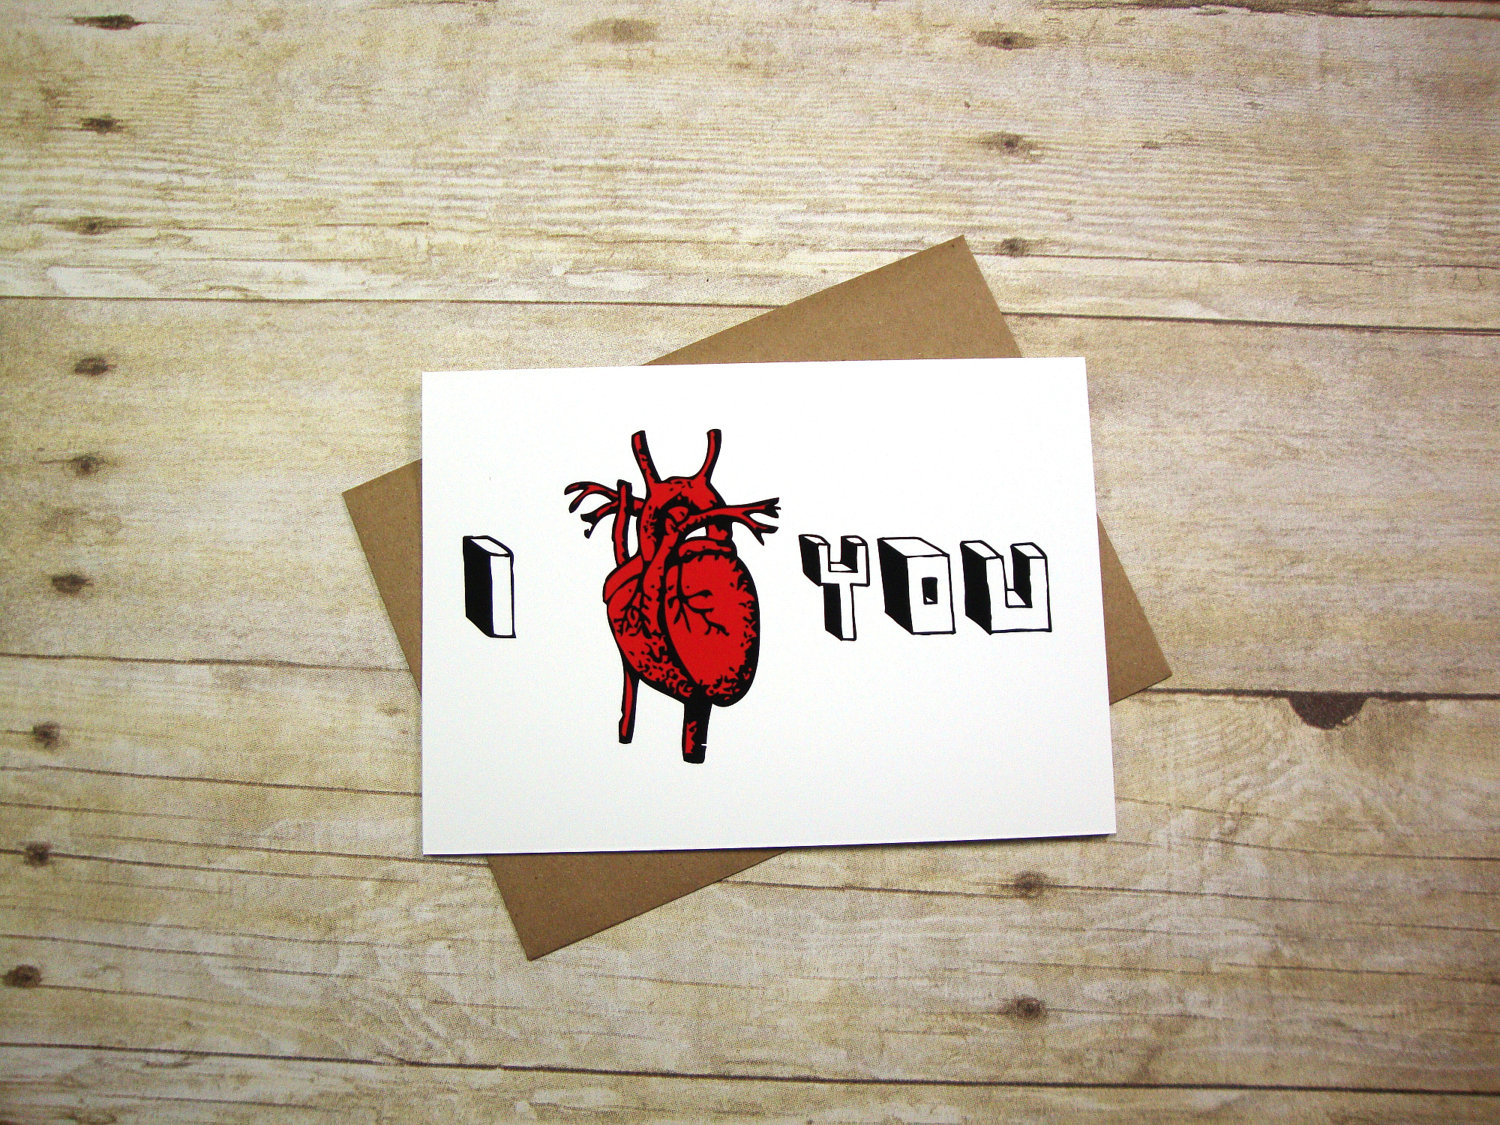 I love you greeting cards for girlfriend online quotes gallery iloveyougreetingcardsforgirlfriend11 m4hsunfo